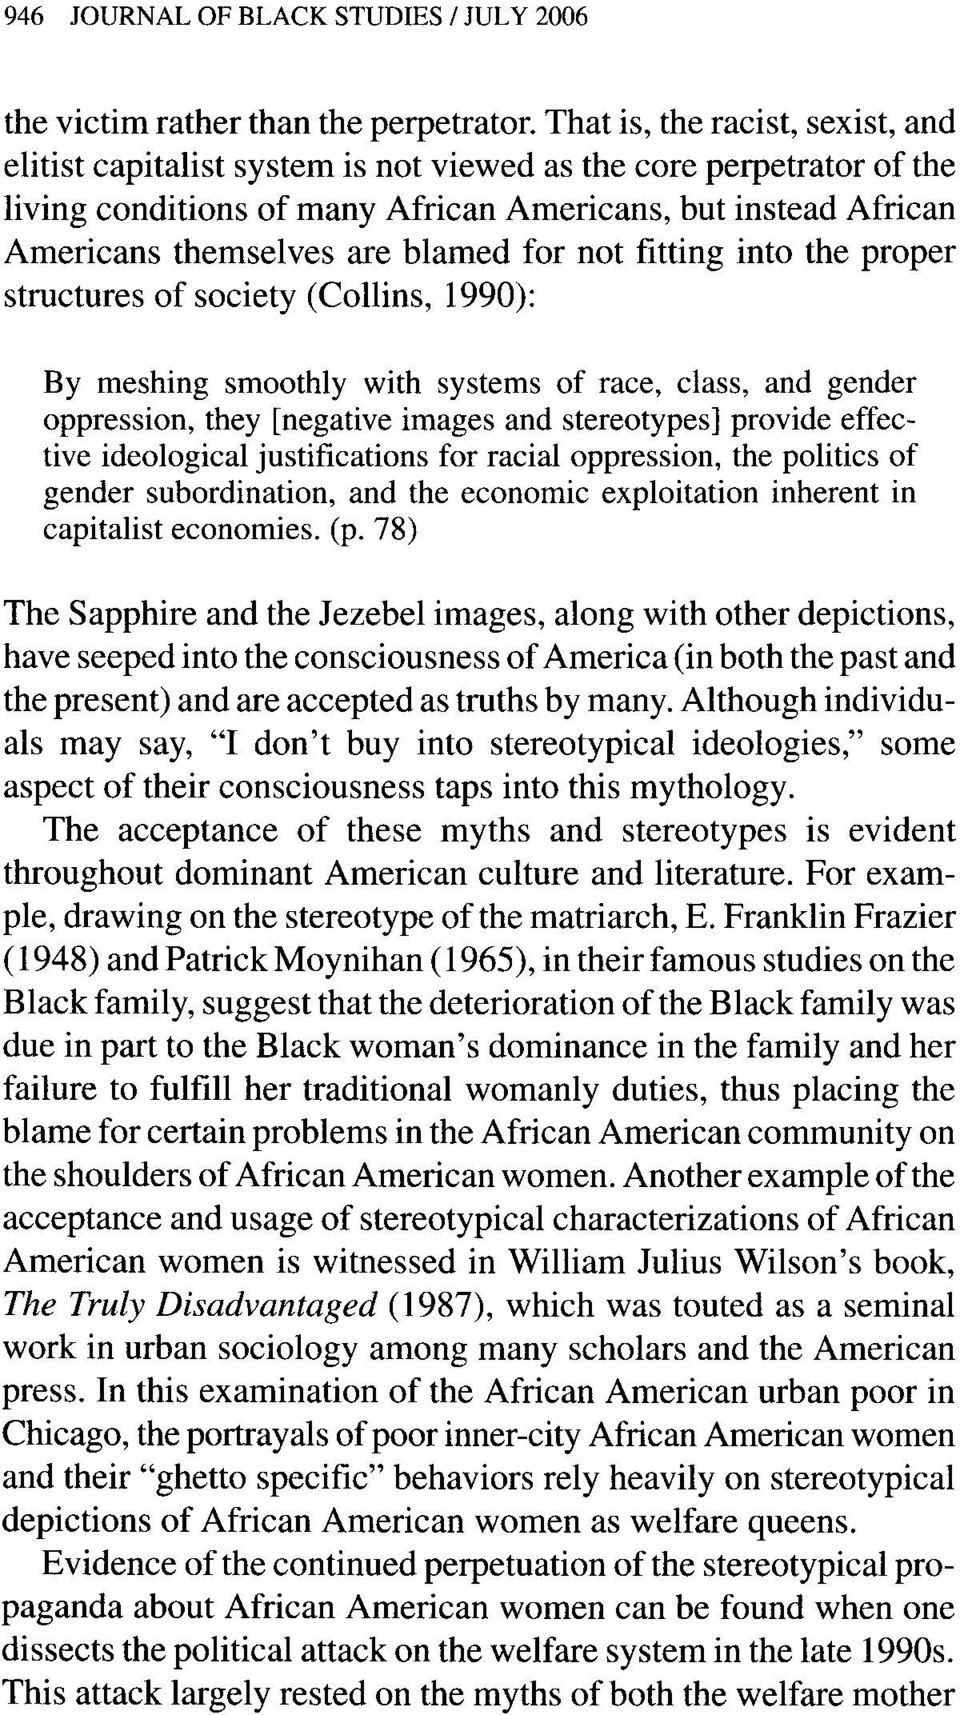 blamed for not fitting into the proper structures of society (Collins, 1990): By meshing smoothly with systems of race, class, and gender oppression, they [negative images and stereotypes] provide